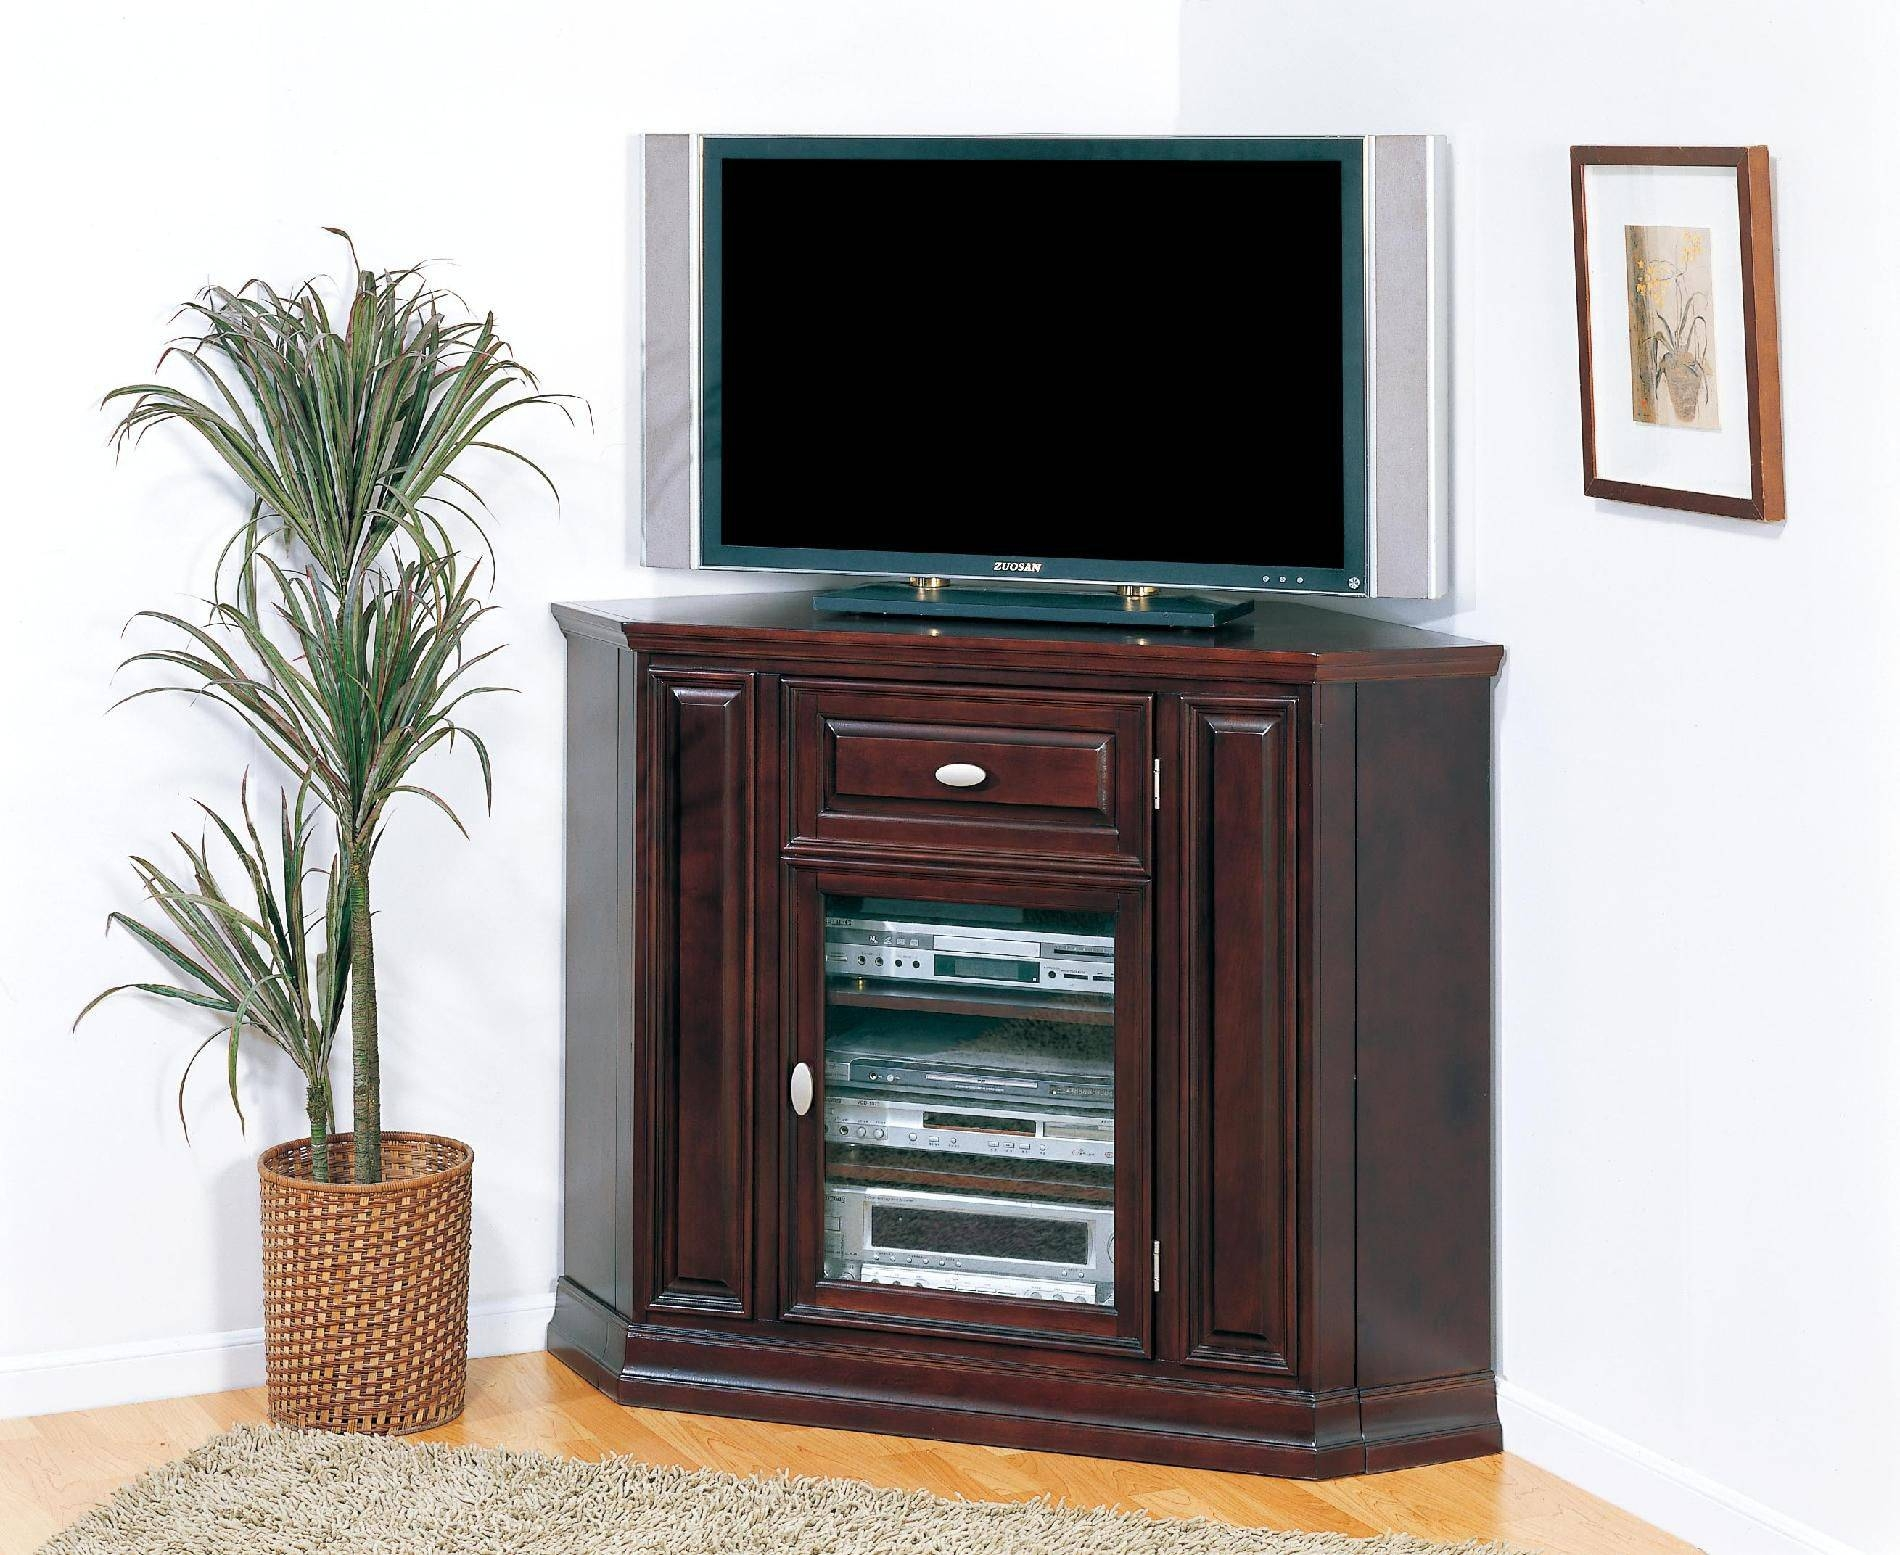 Furniture. Tall Dark Brown Wood Corner Tv Cabinet For Flat Screen with regard to Black Corner Tv Cabinets With Glass Doors (Image 4 of 15)